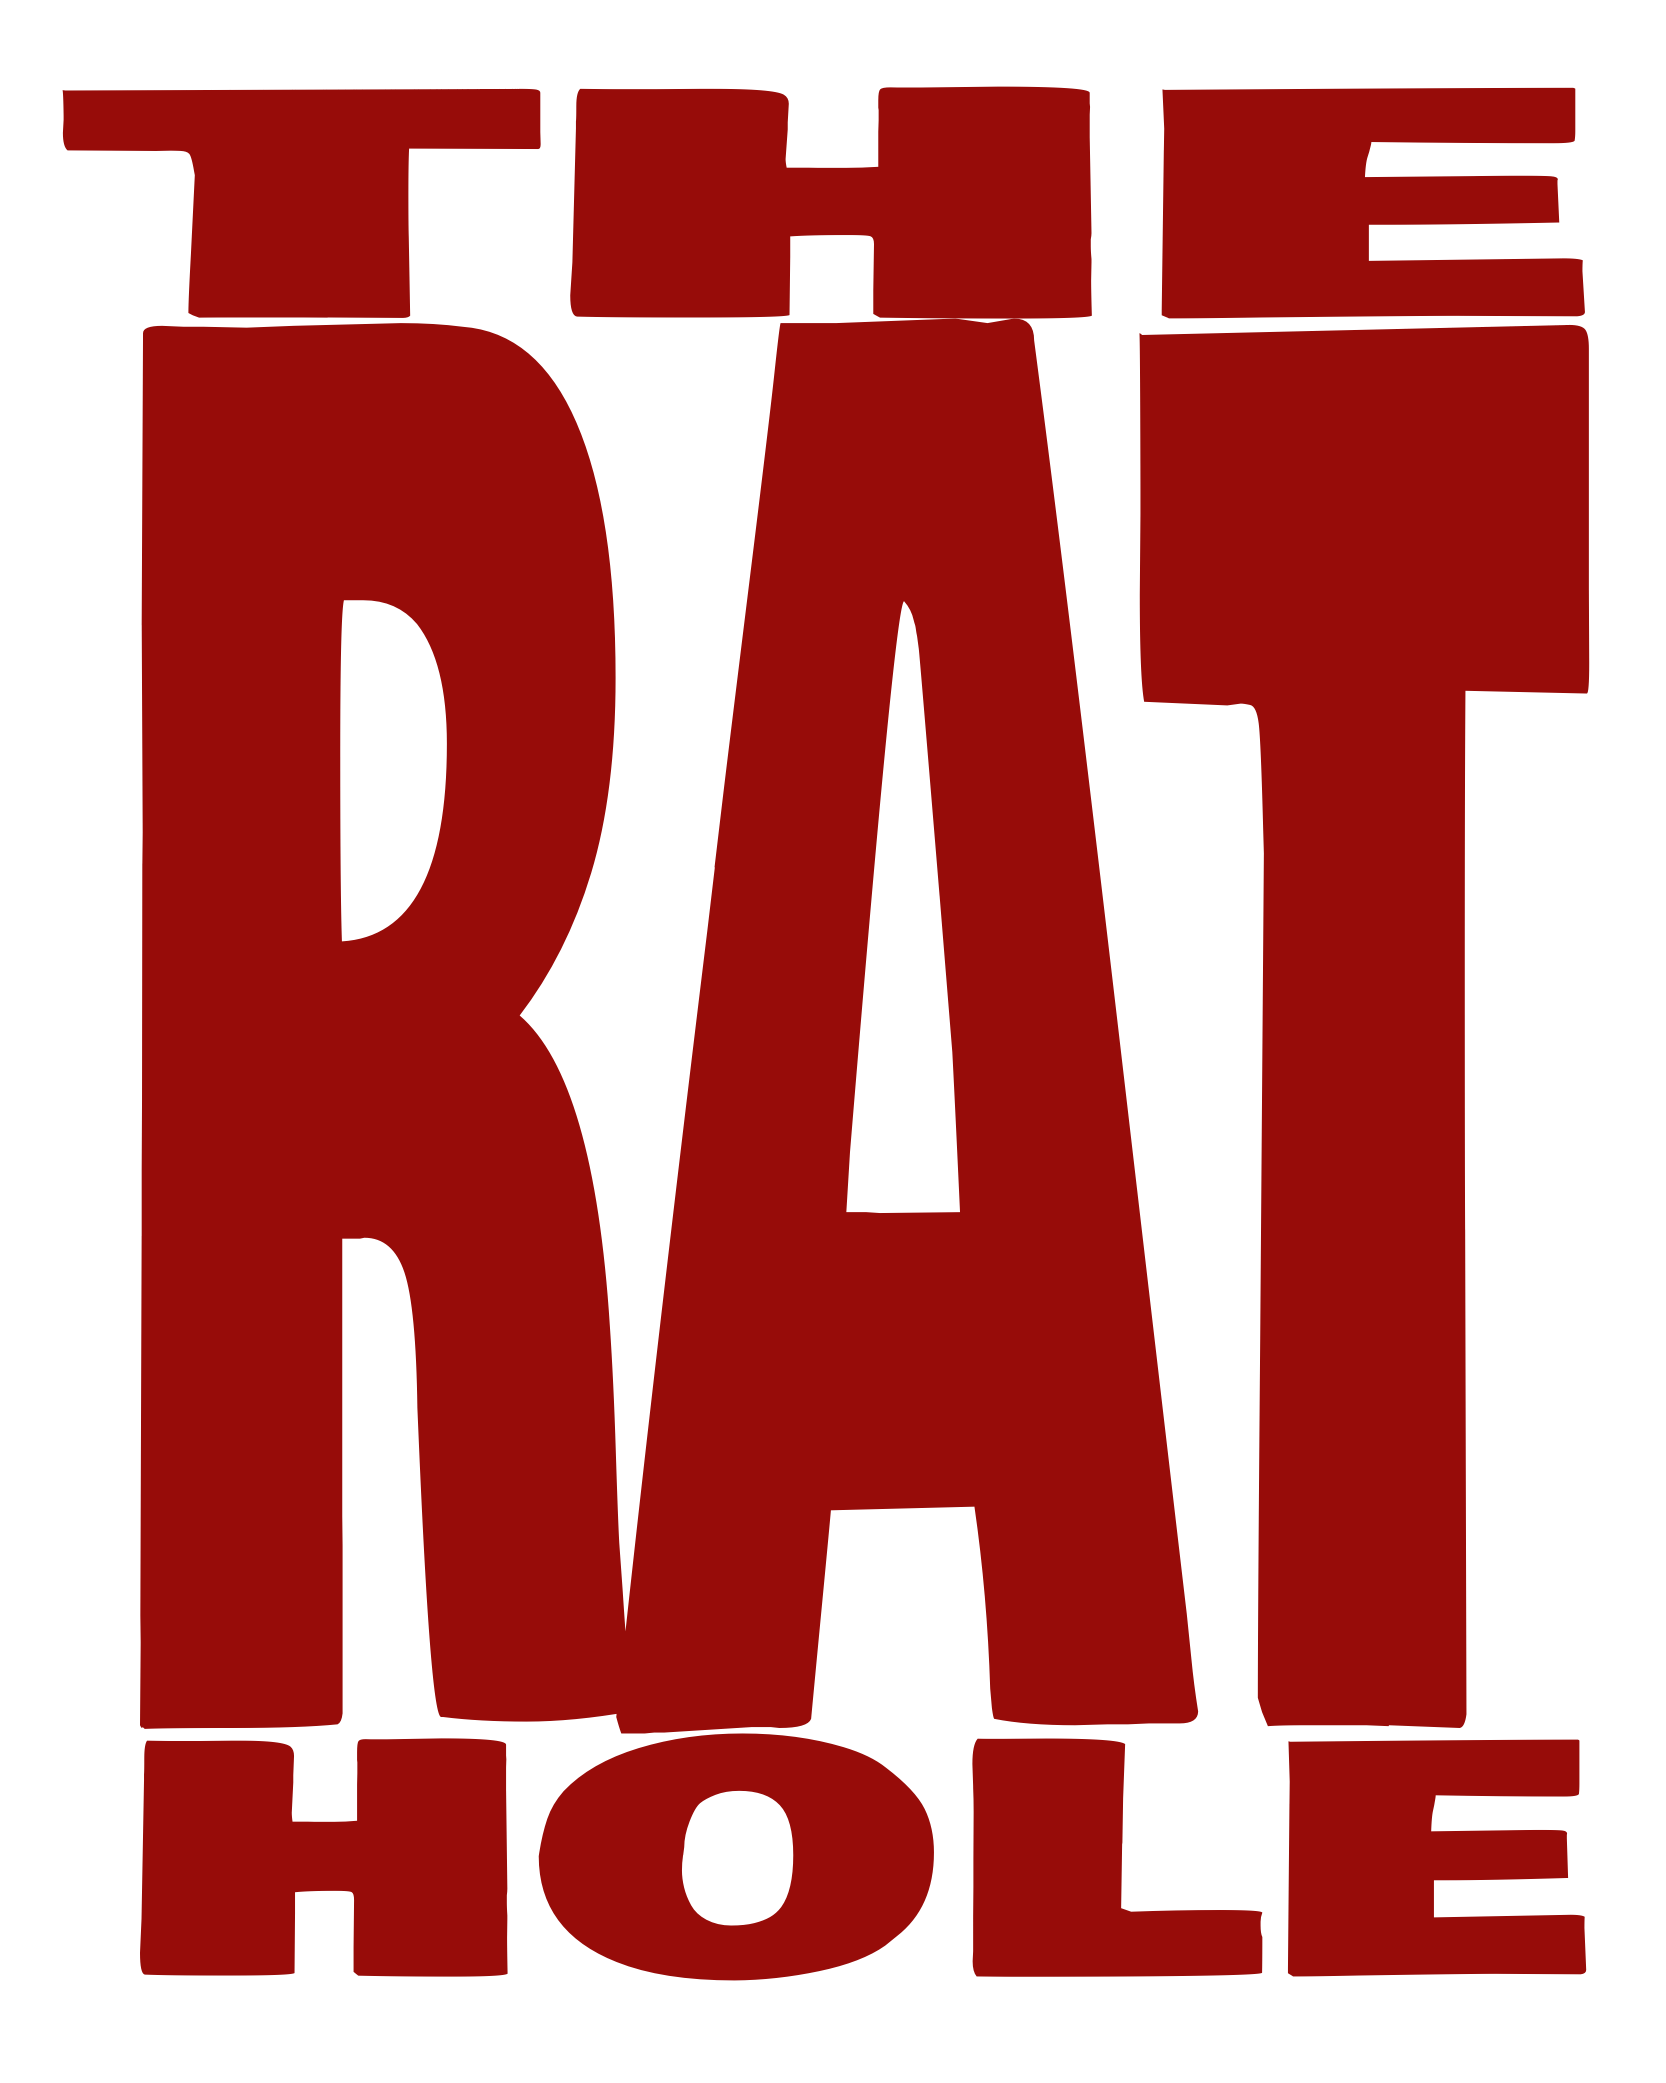 The Rat Hole